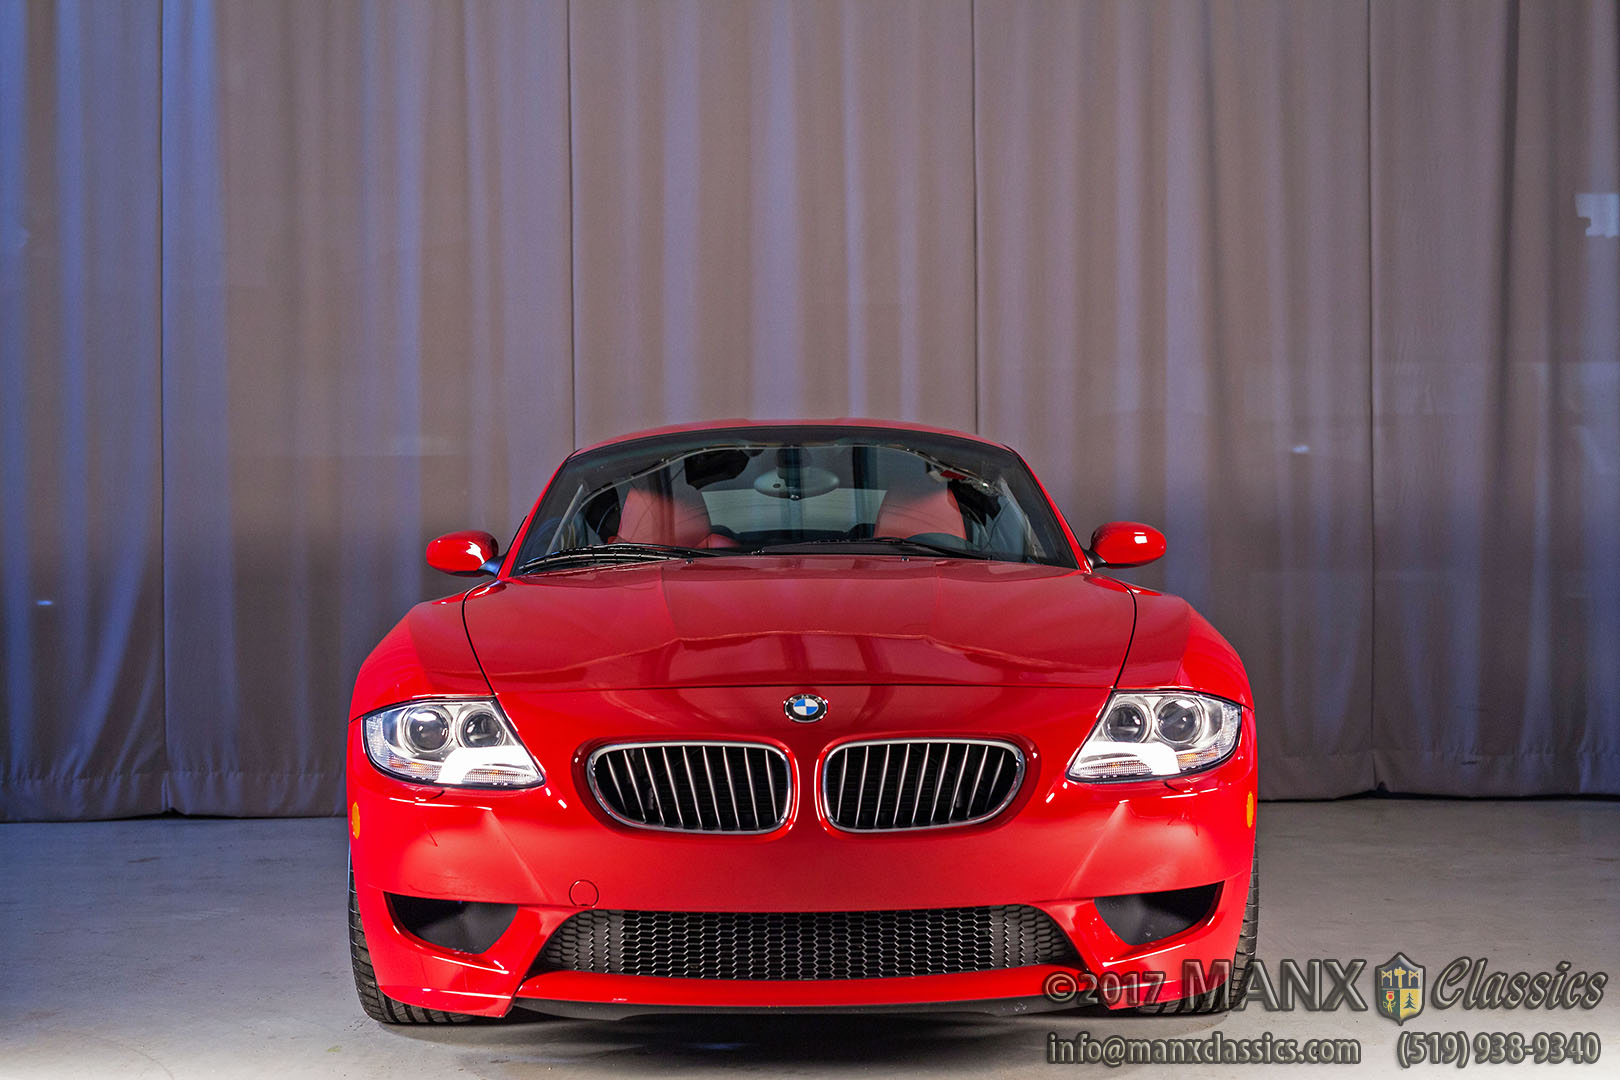 2007E_BMW_Z4_M_Coupe_Red_003